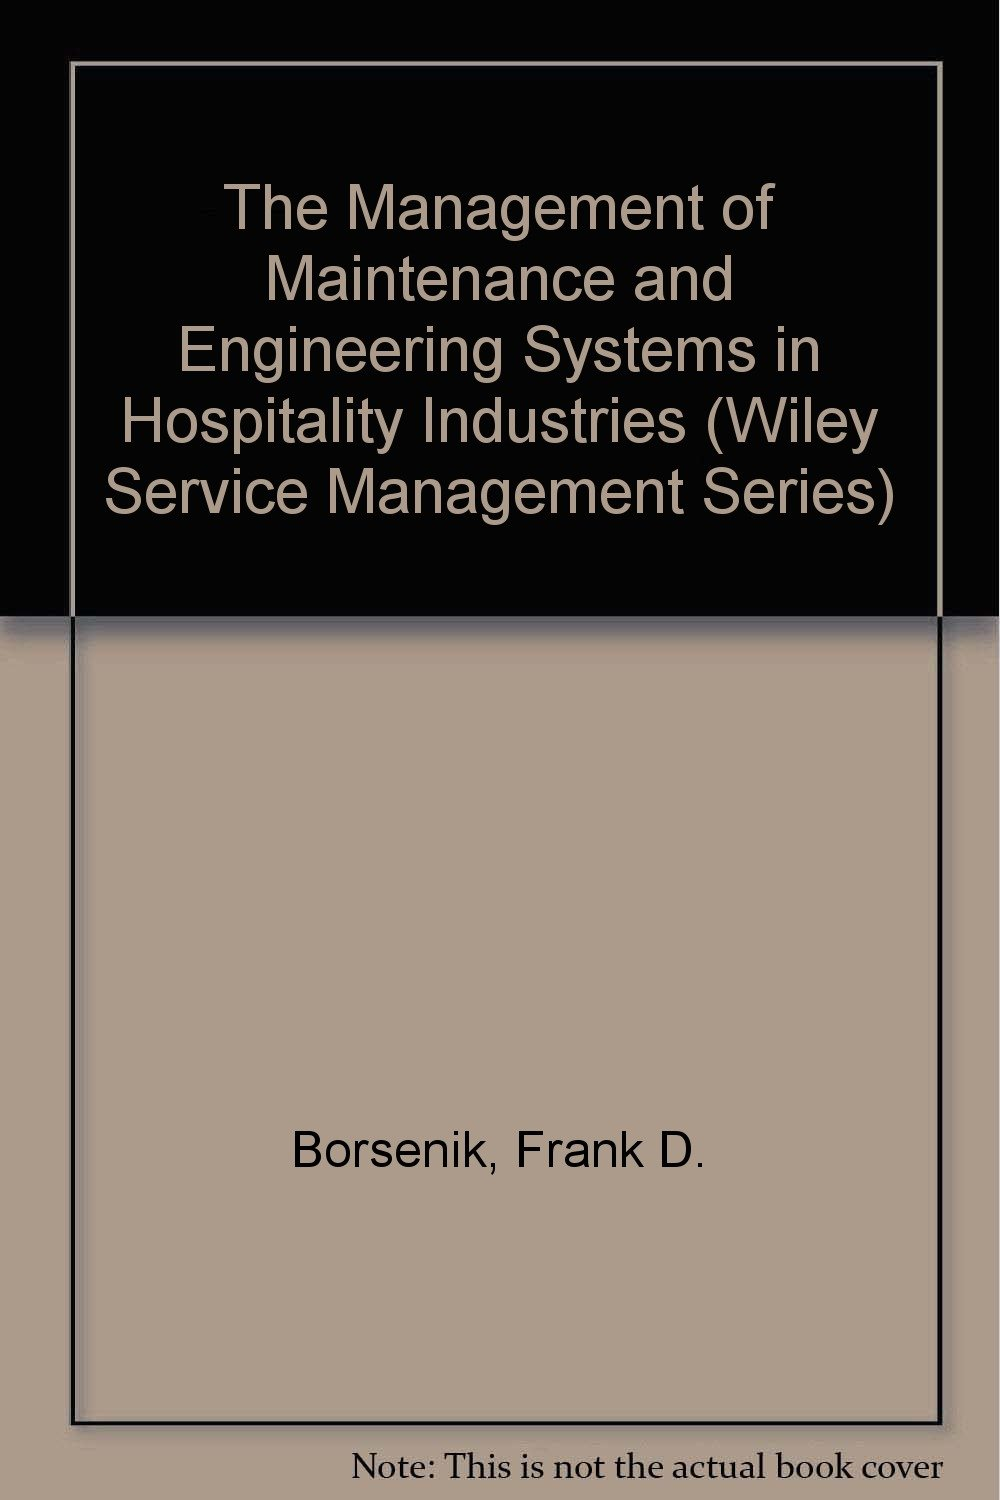 The Management of Maintenance and Engineering Systems in Hospitality Industries (Wiley Service Management Series)